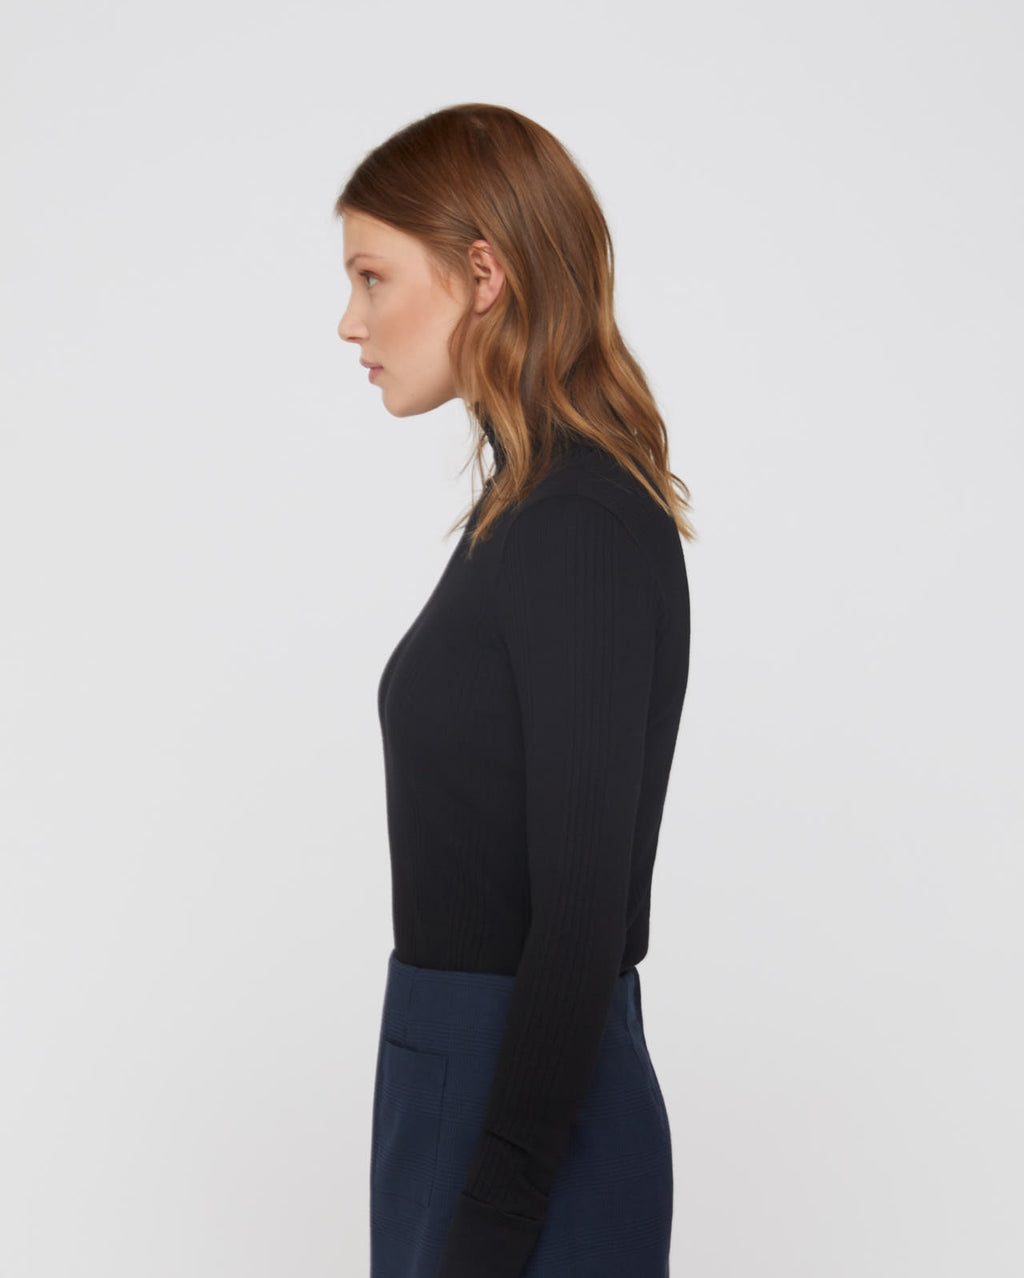 The Janie Turtleneck in Black